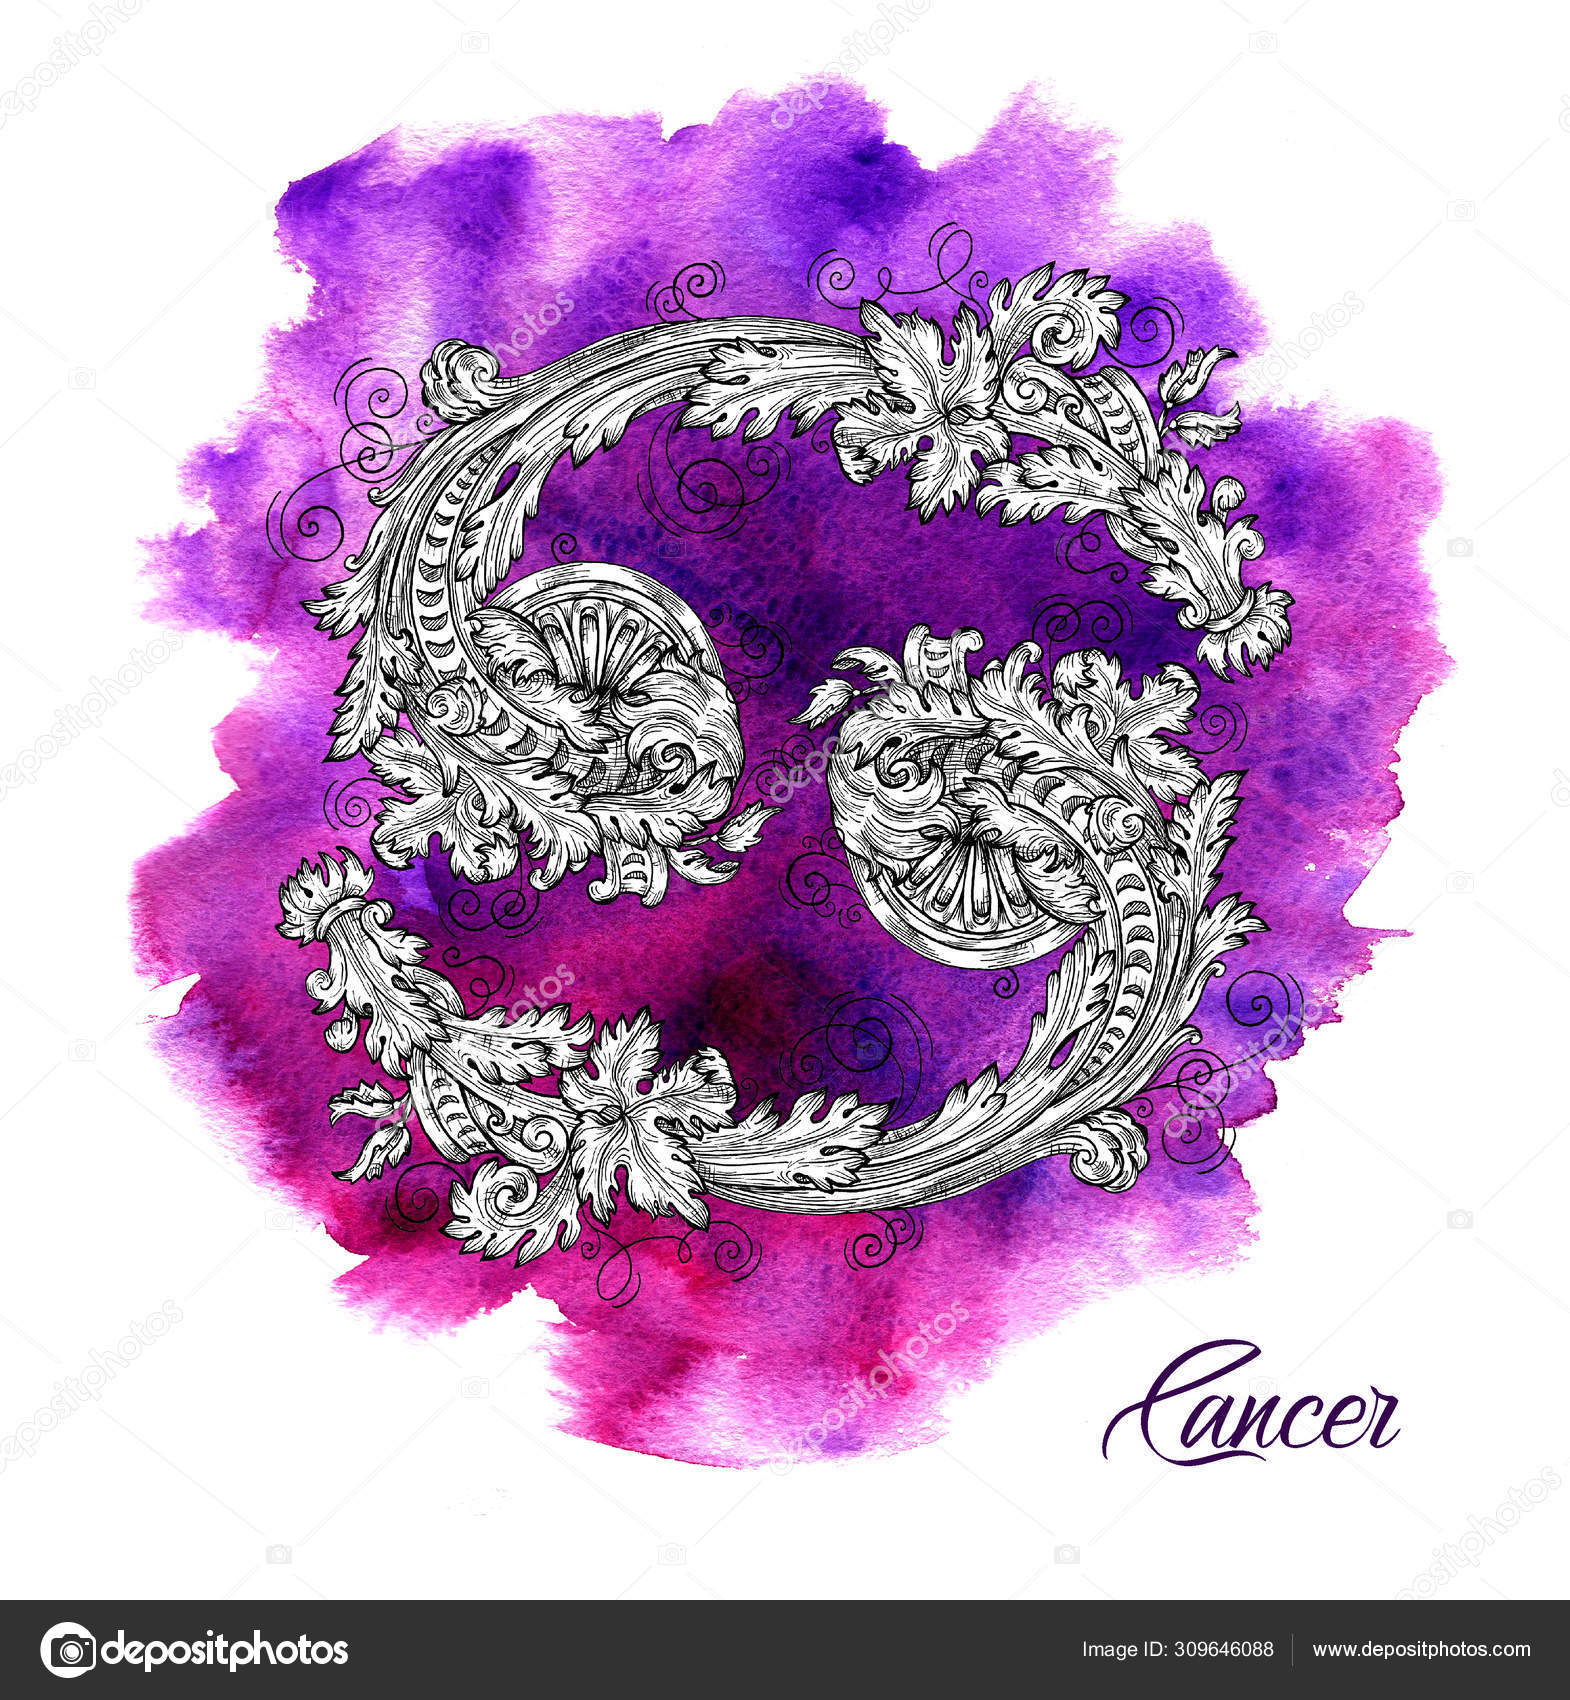 Cancer Zodiac Sign on purple watercolor background. ⬇ Stock Photo, Image by  © Samiramay #309646088